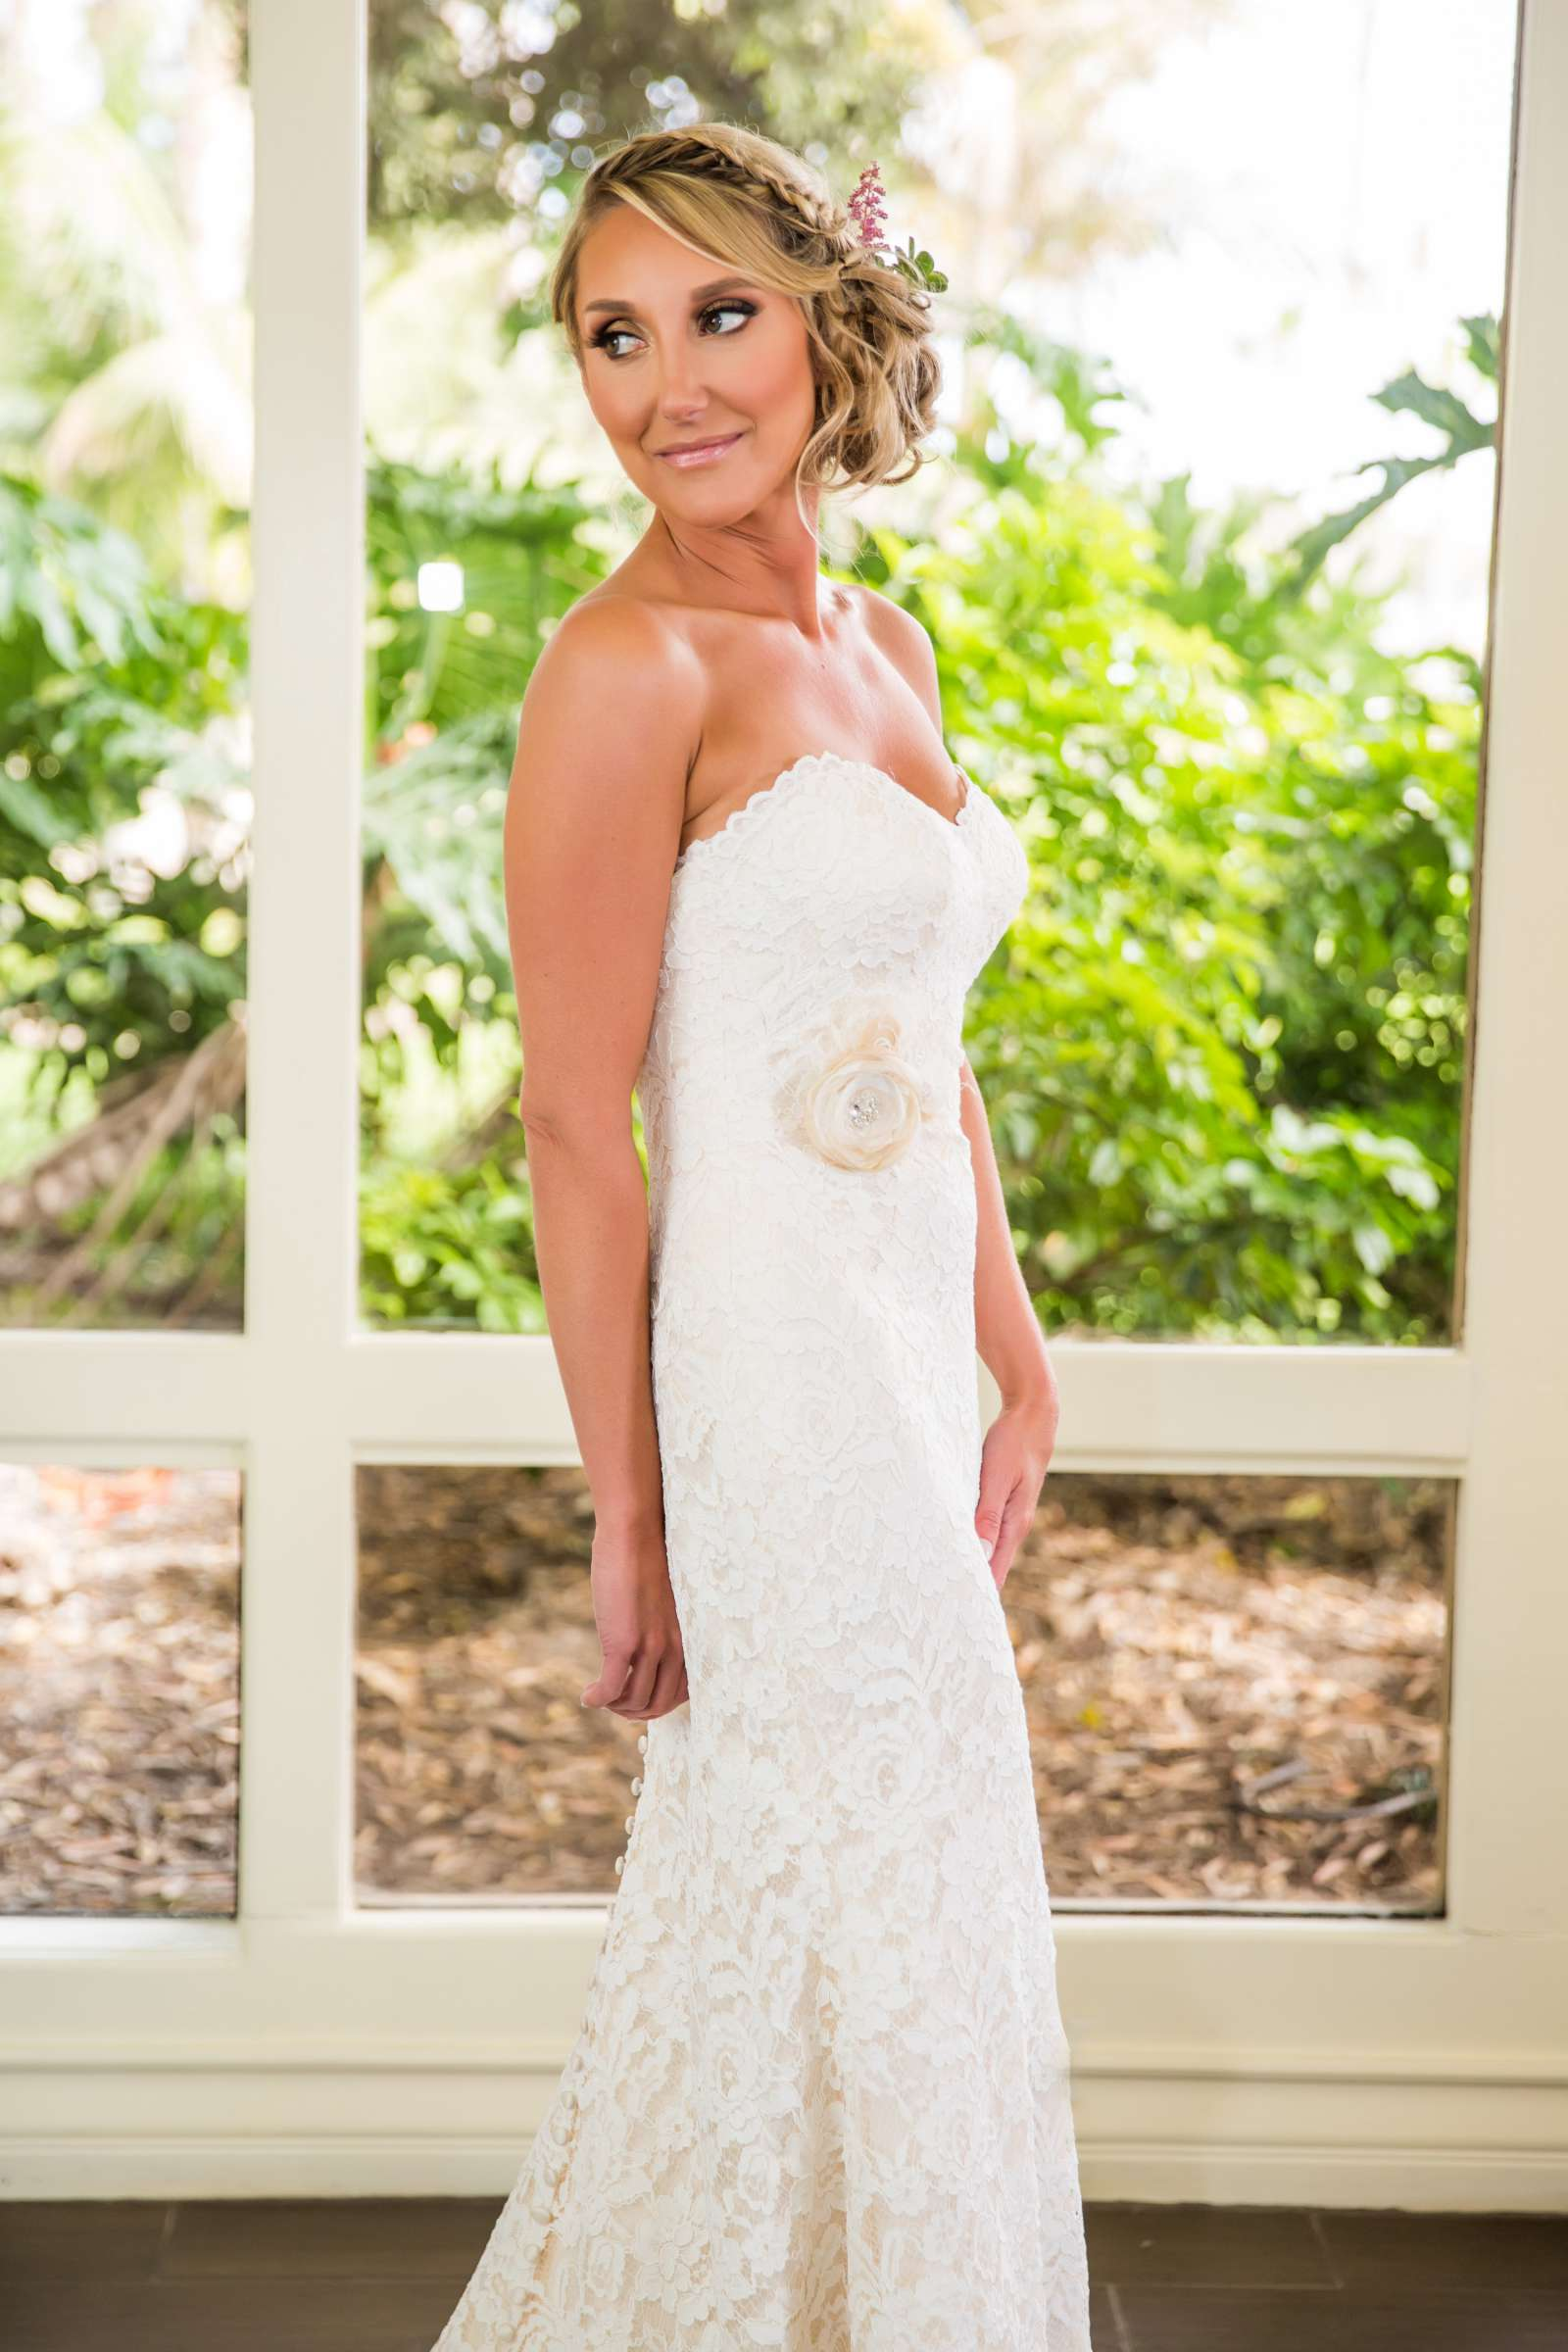 Paradise Point Wedding, Kimberly and Michael Wedding Photo #22 by True Photography